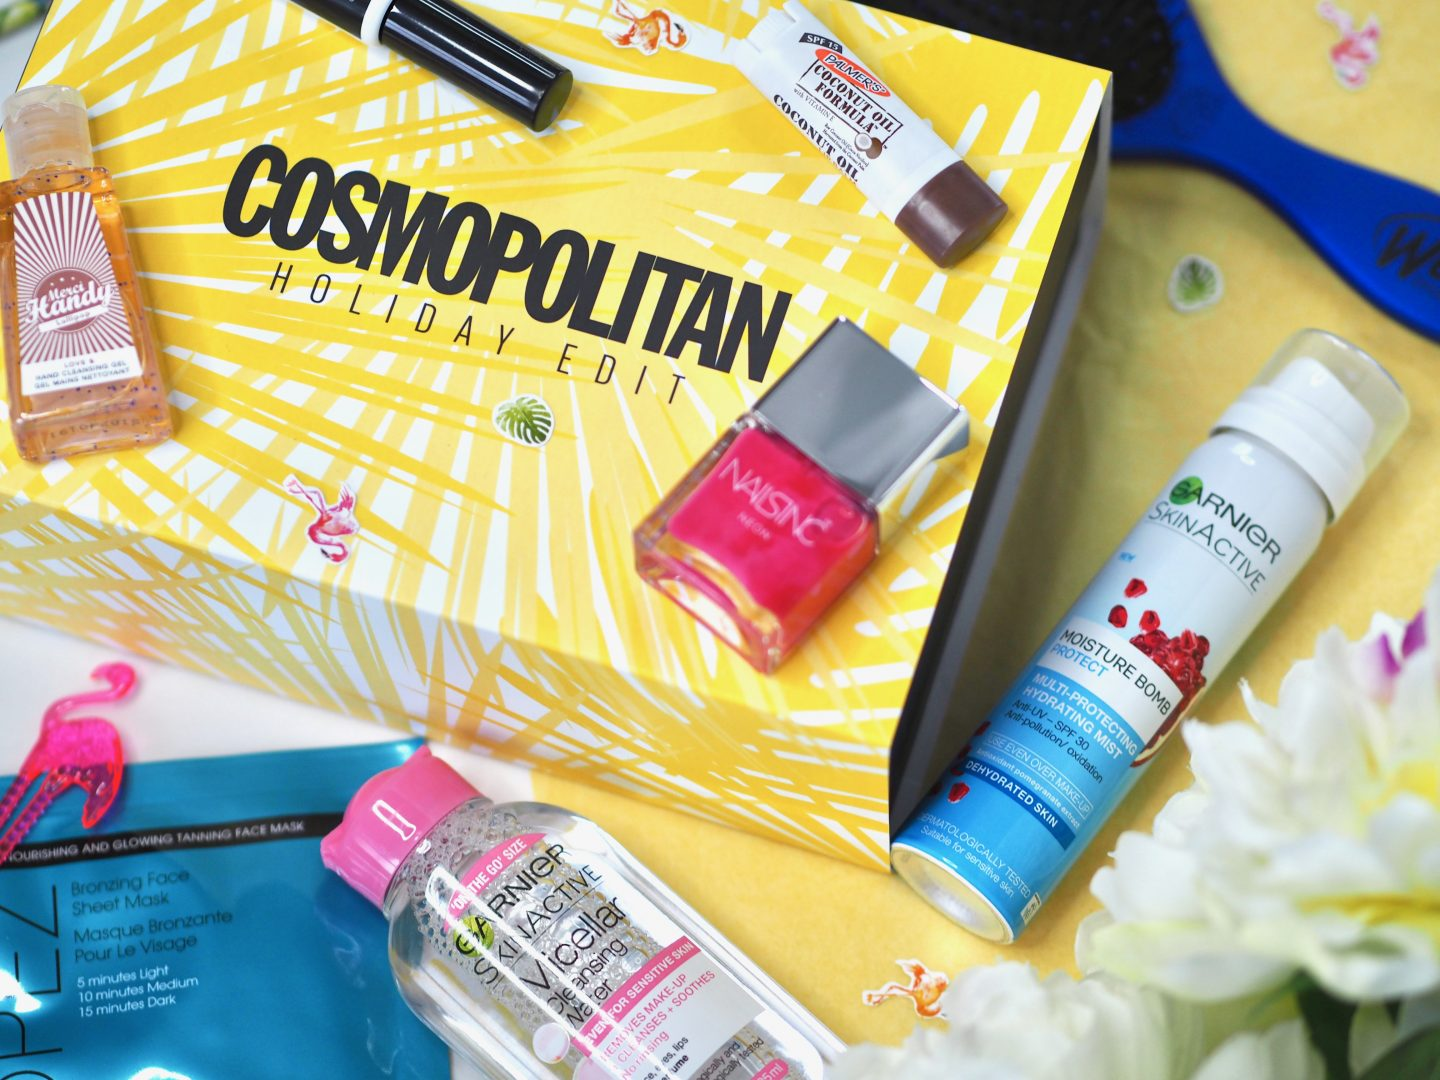 COSMOPOLITAN HOLIDAY EDIT – LATEST IN BEAUTY